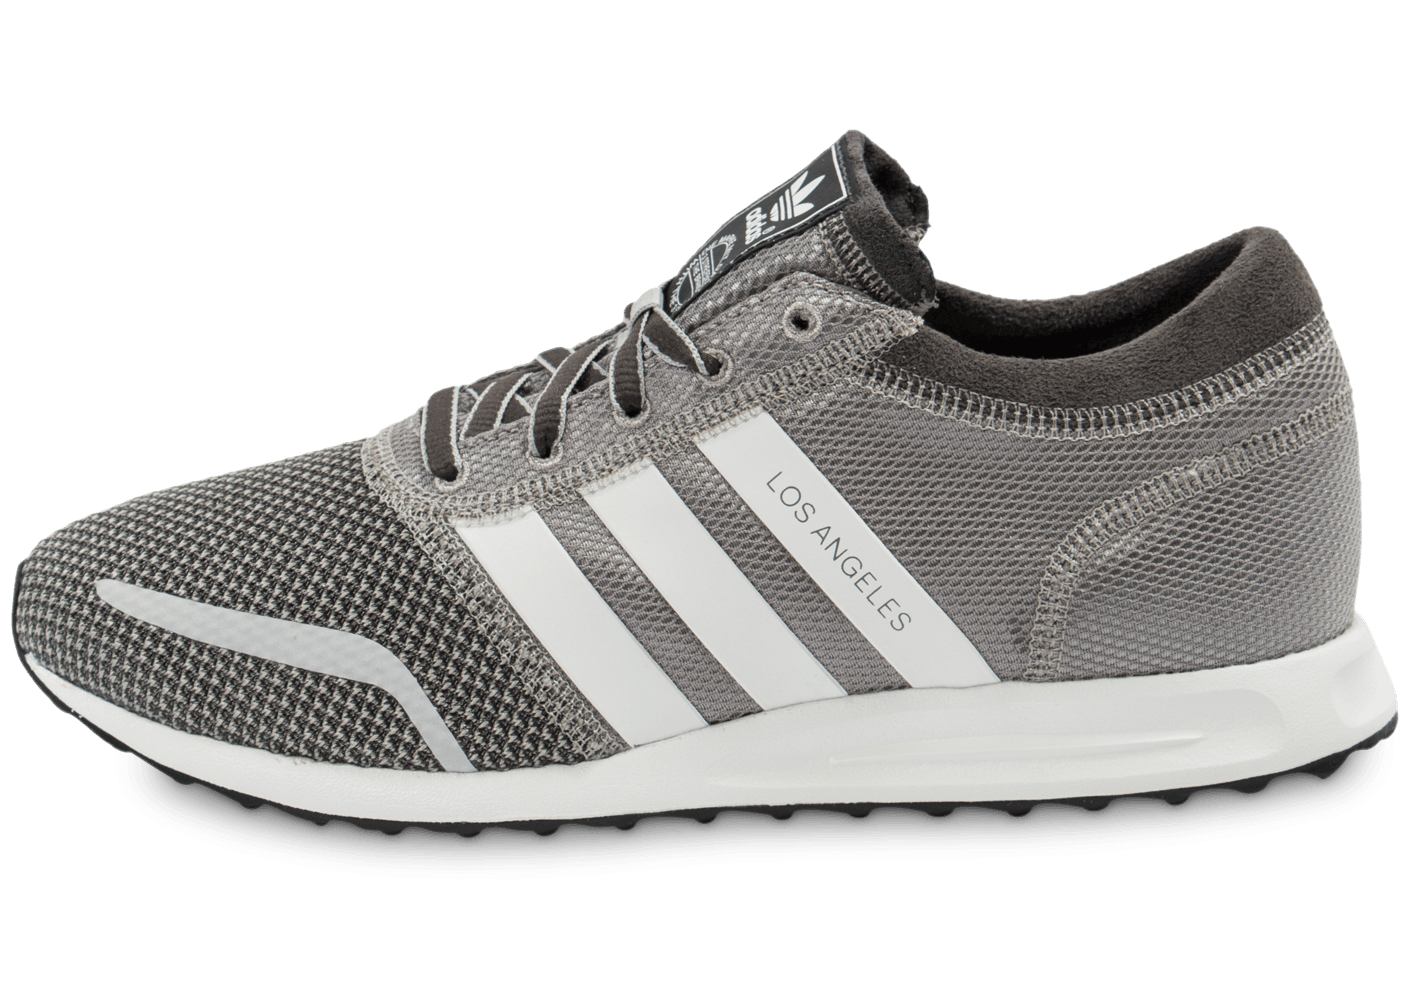 official photos 24a51 a6202 Angeles Los Homme Chaussures Chausport Adidas Argentée Baskets aOw5x